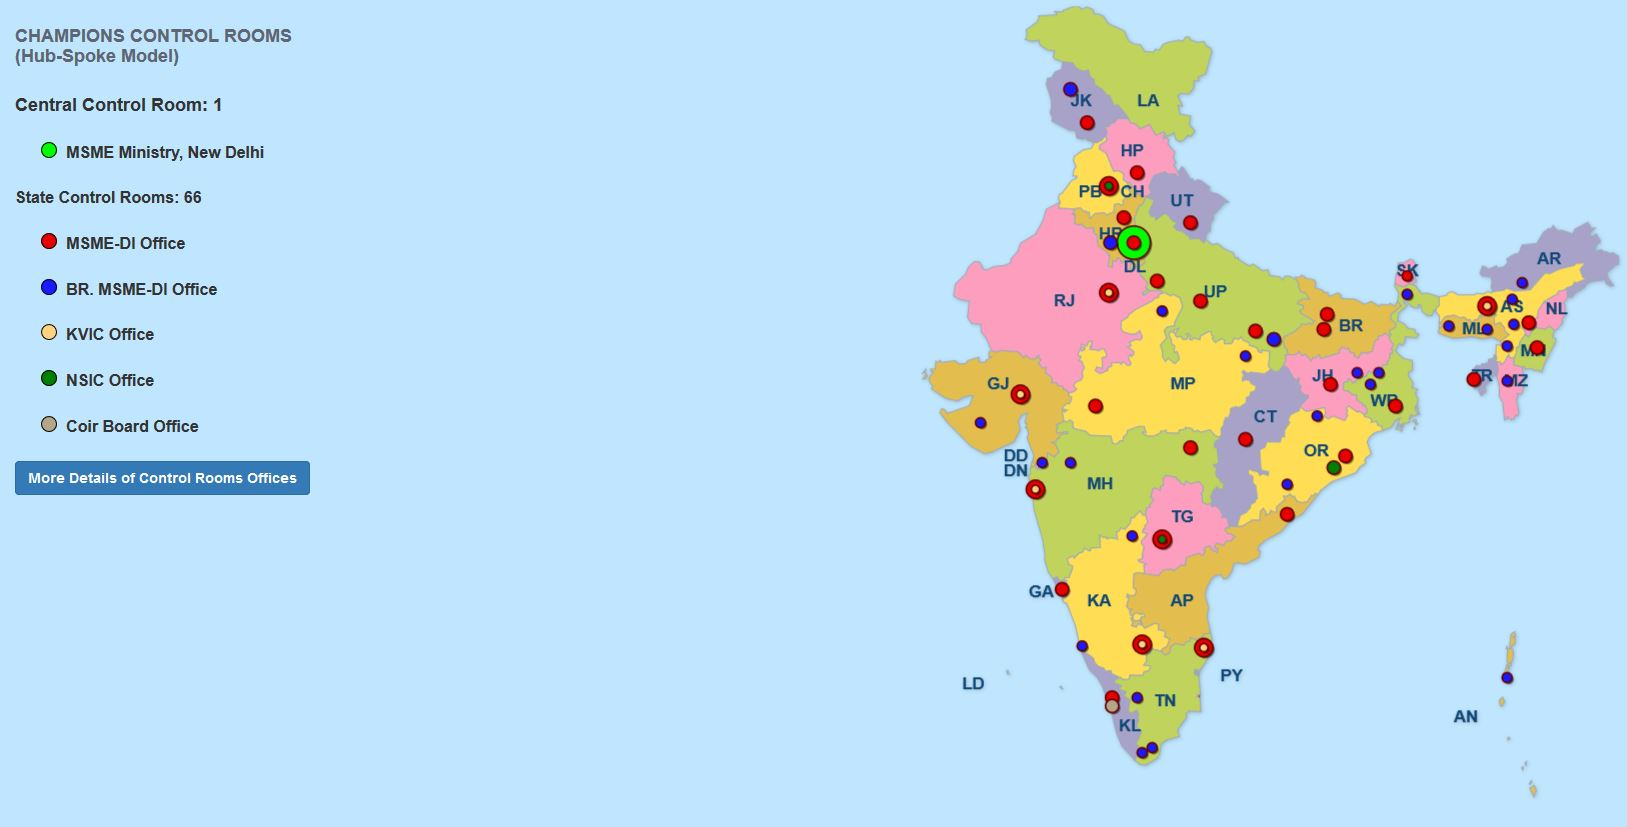 Maps of MSME CHAMPIONS